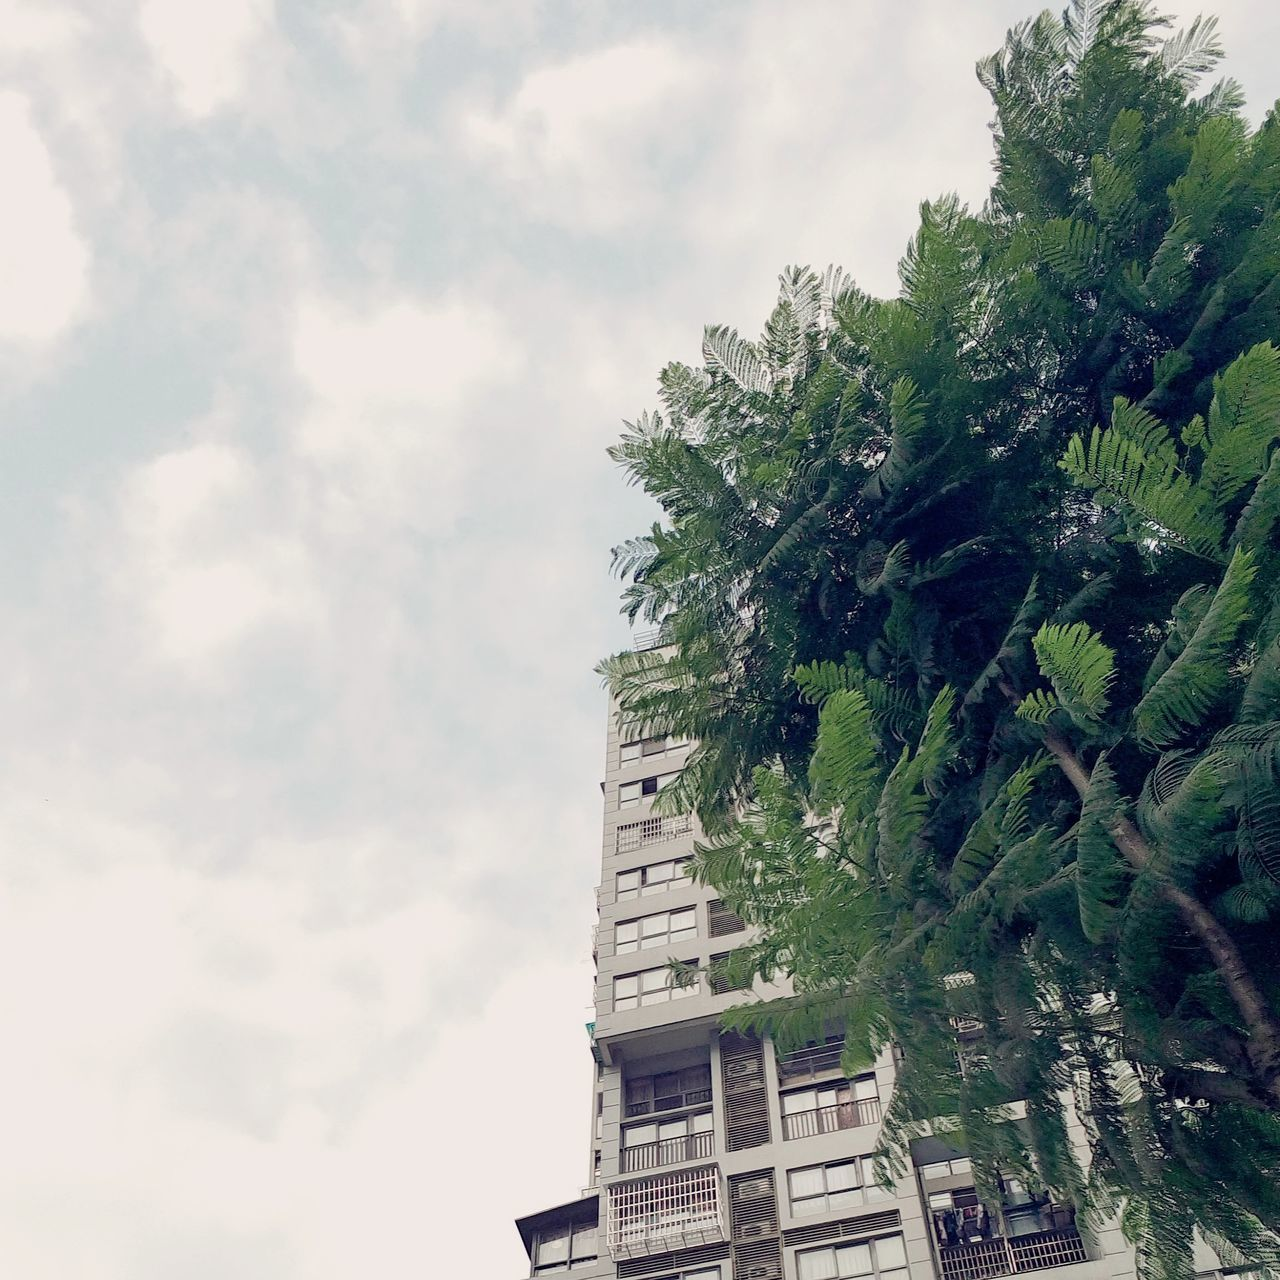 Sky Tree Cloud - Sky No People Nature Outdoors Green Leaves 中国 Nice Day White Wave Windy Day Day China